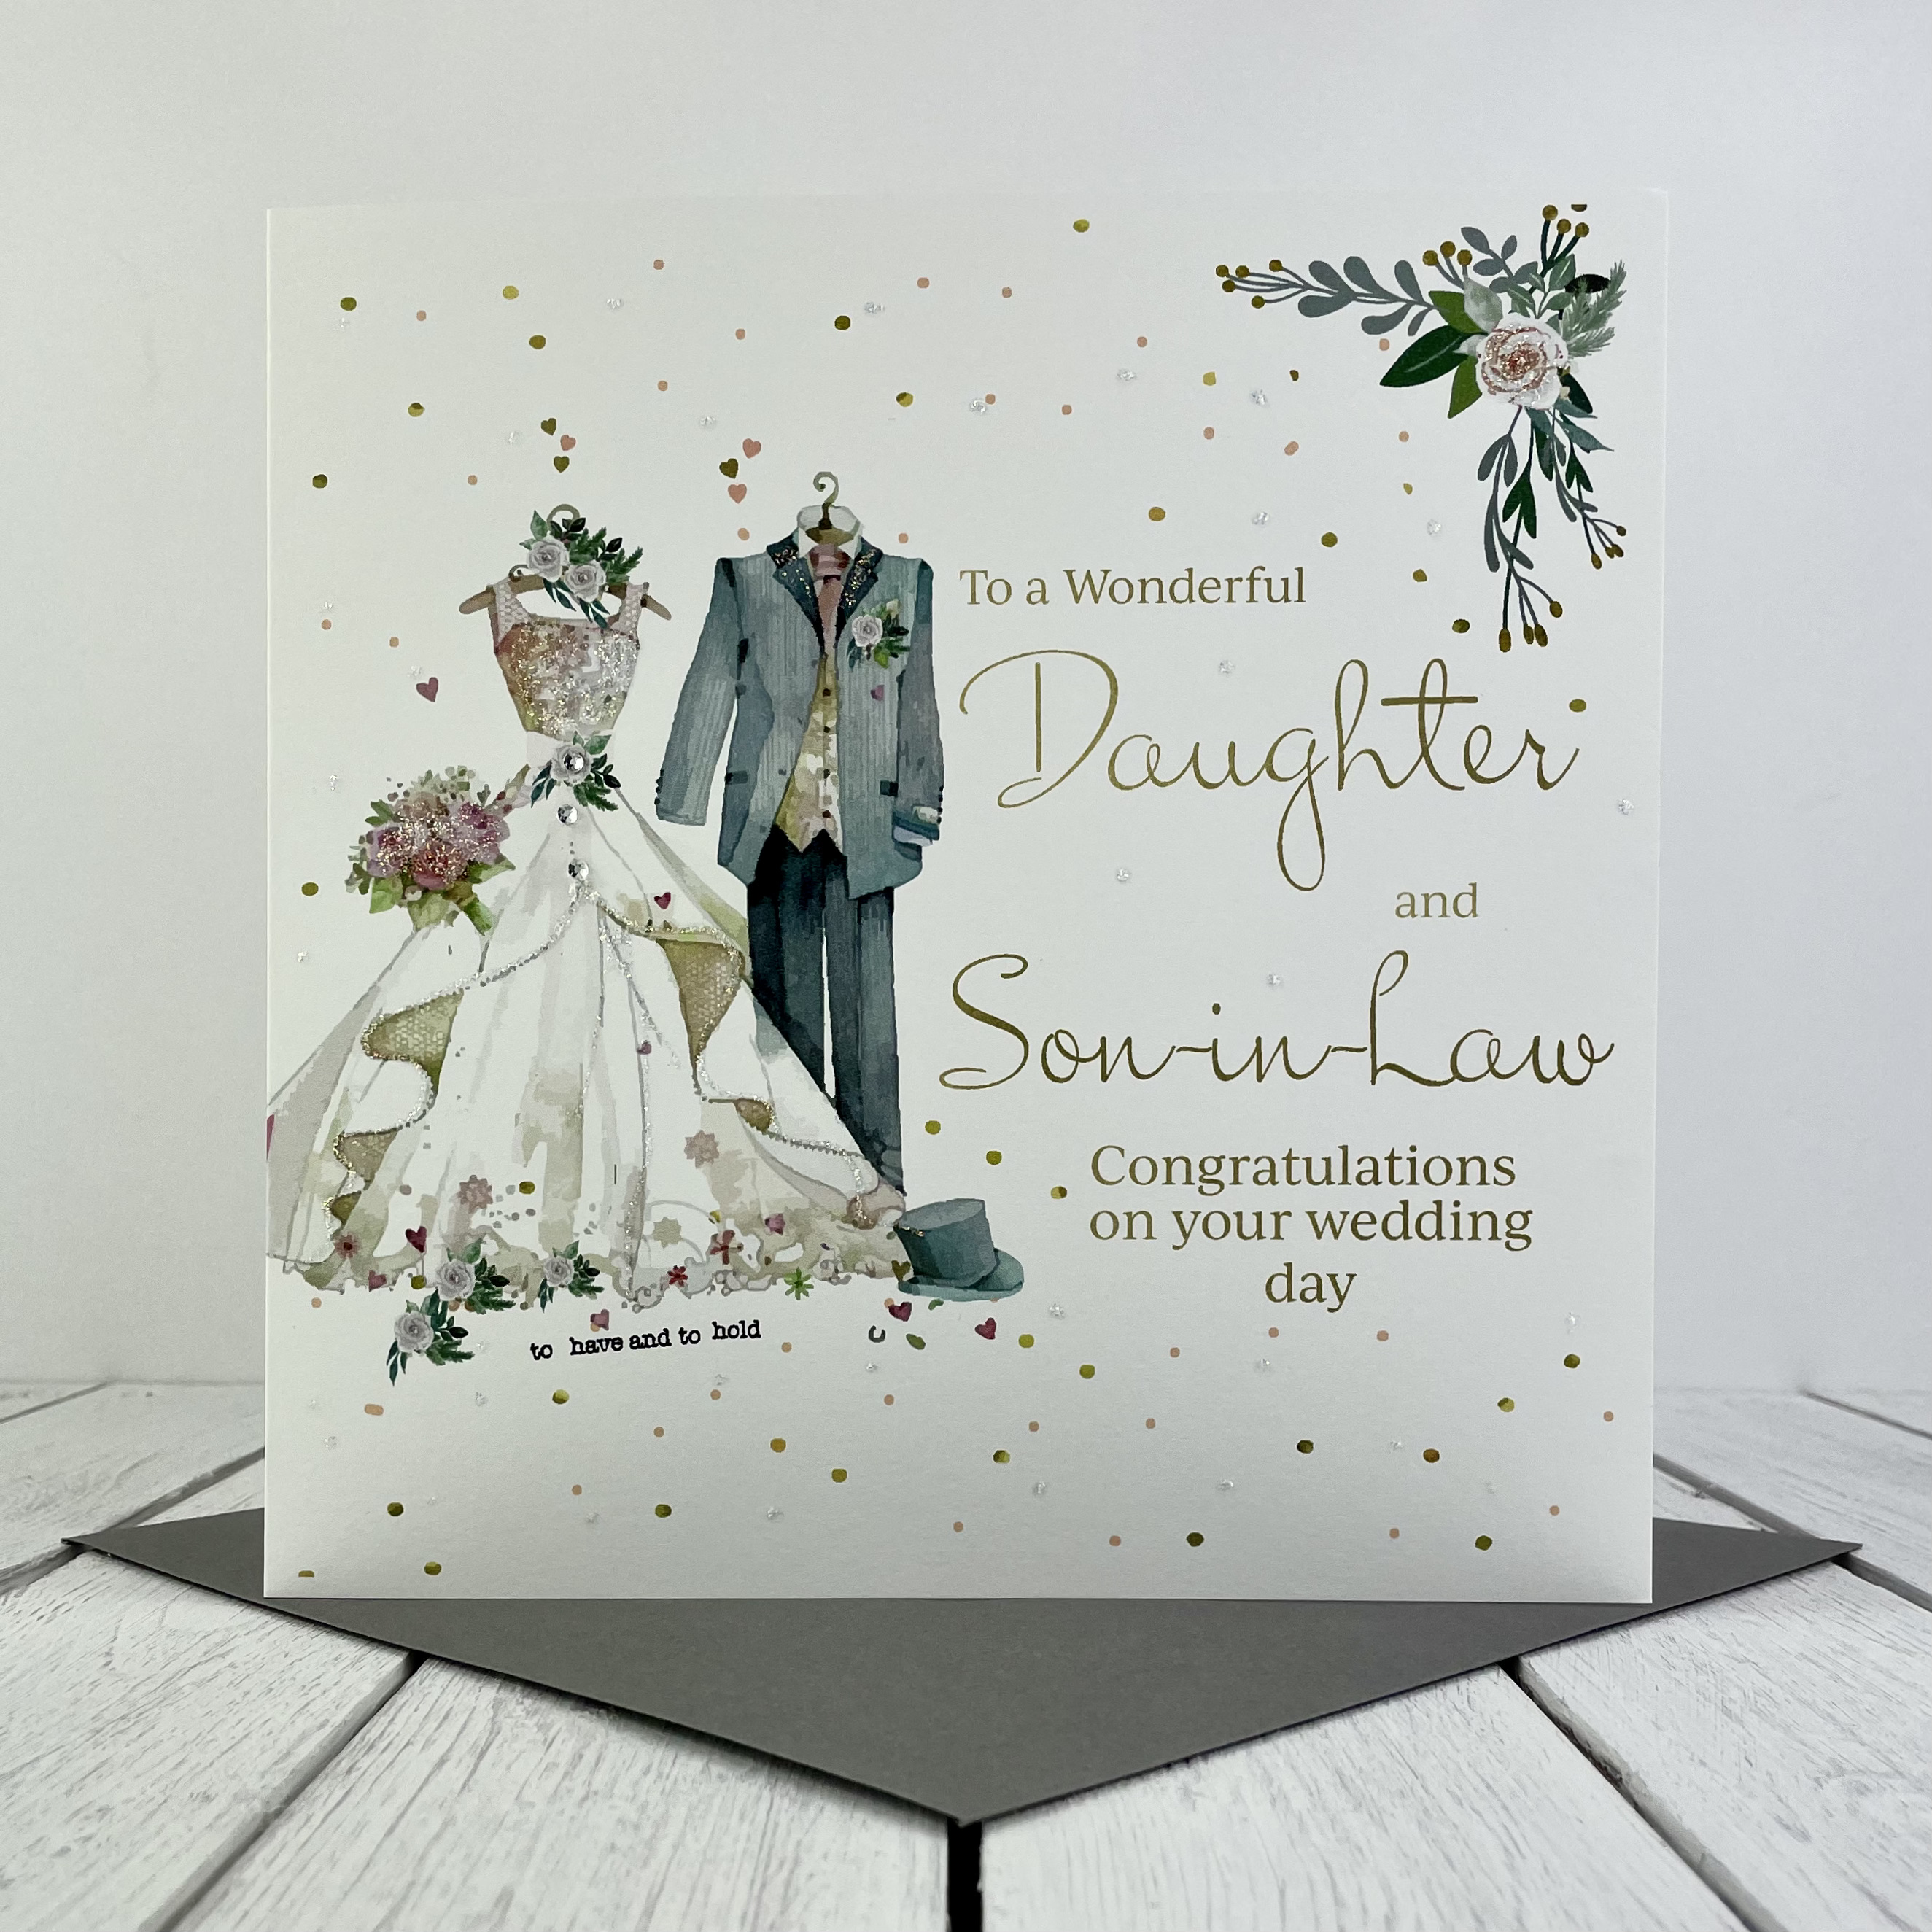 Above: One of the new wedding designs from Rush Design.